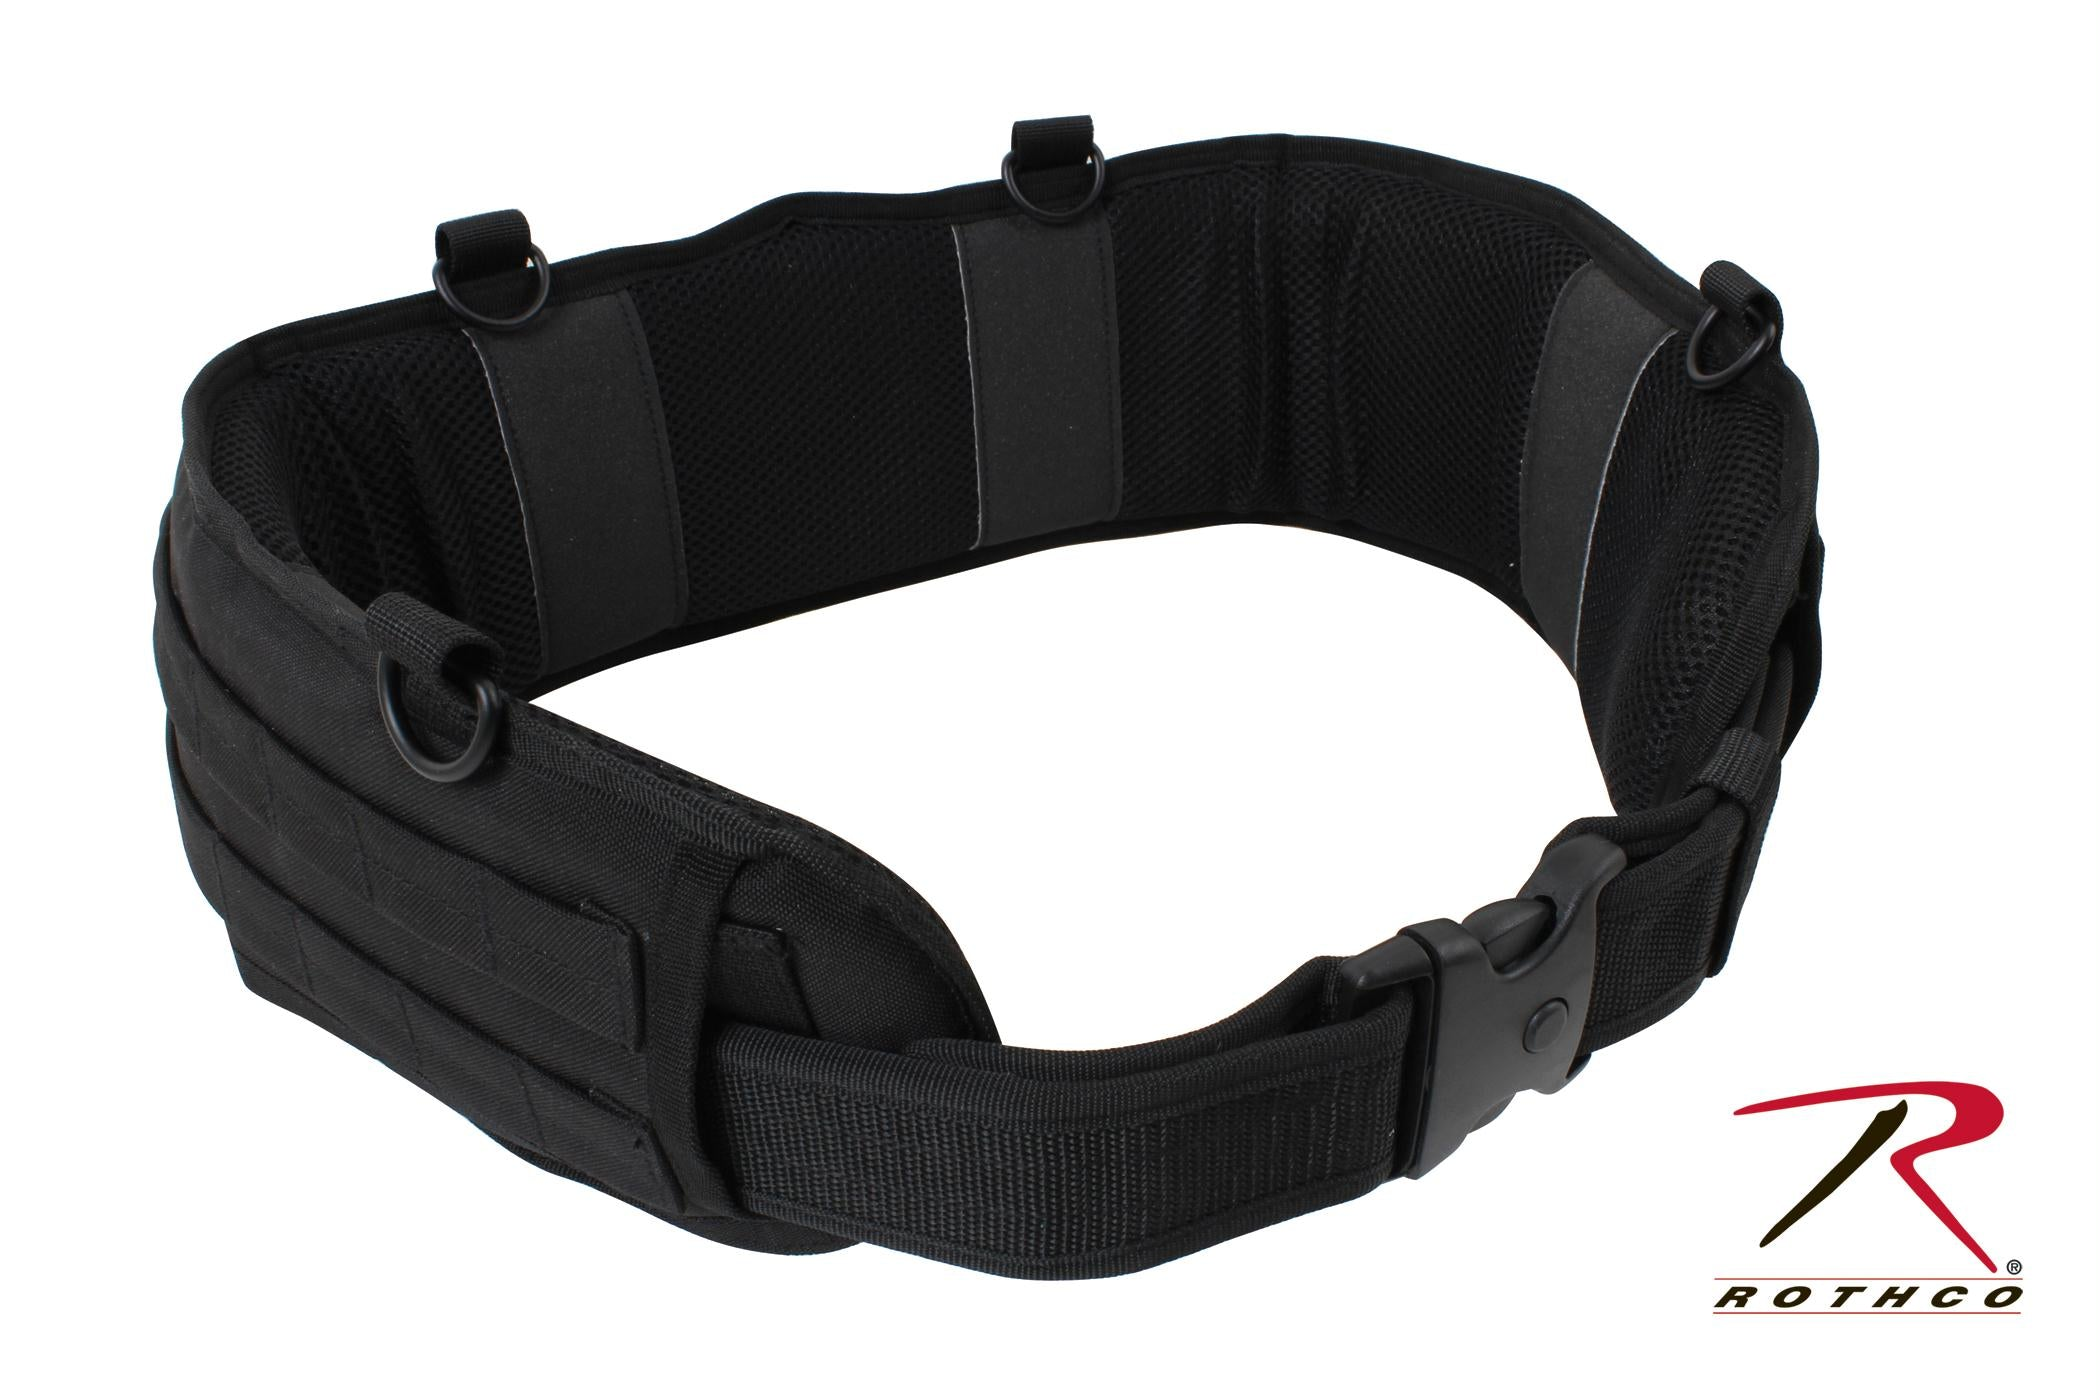 Rothco Tactical Battle Belt - Black / M